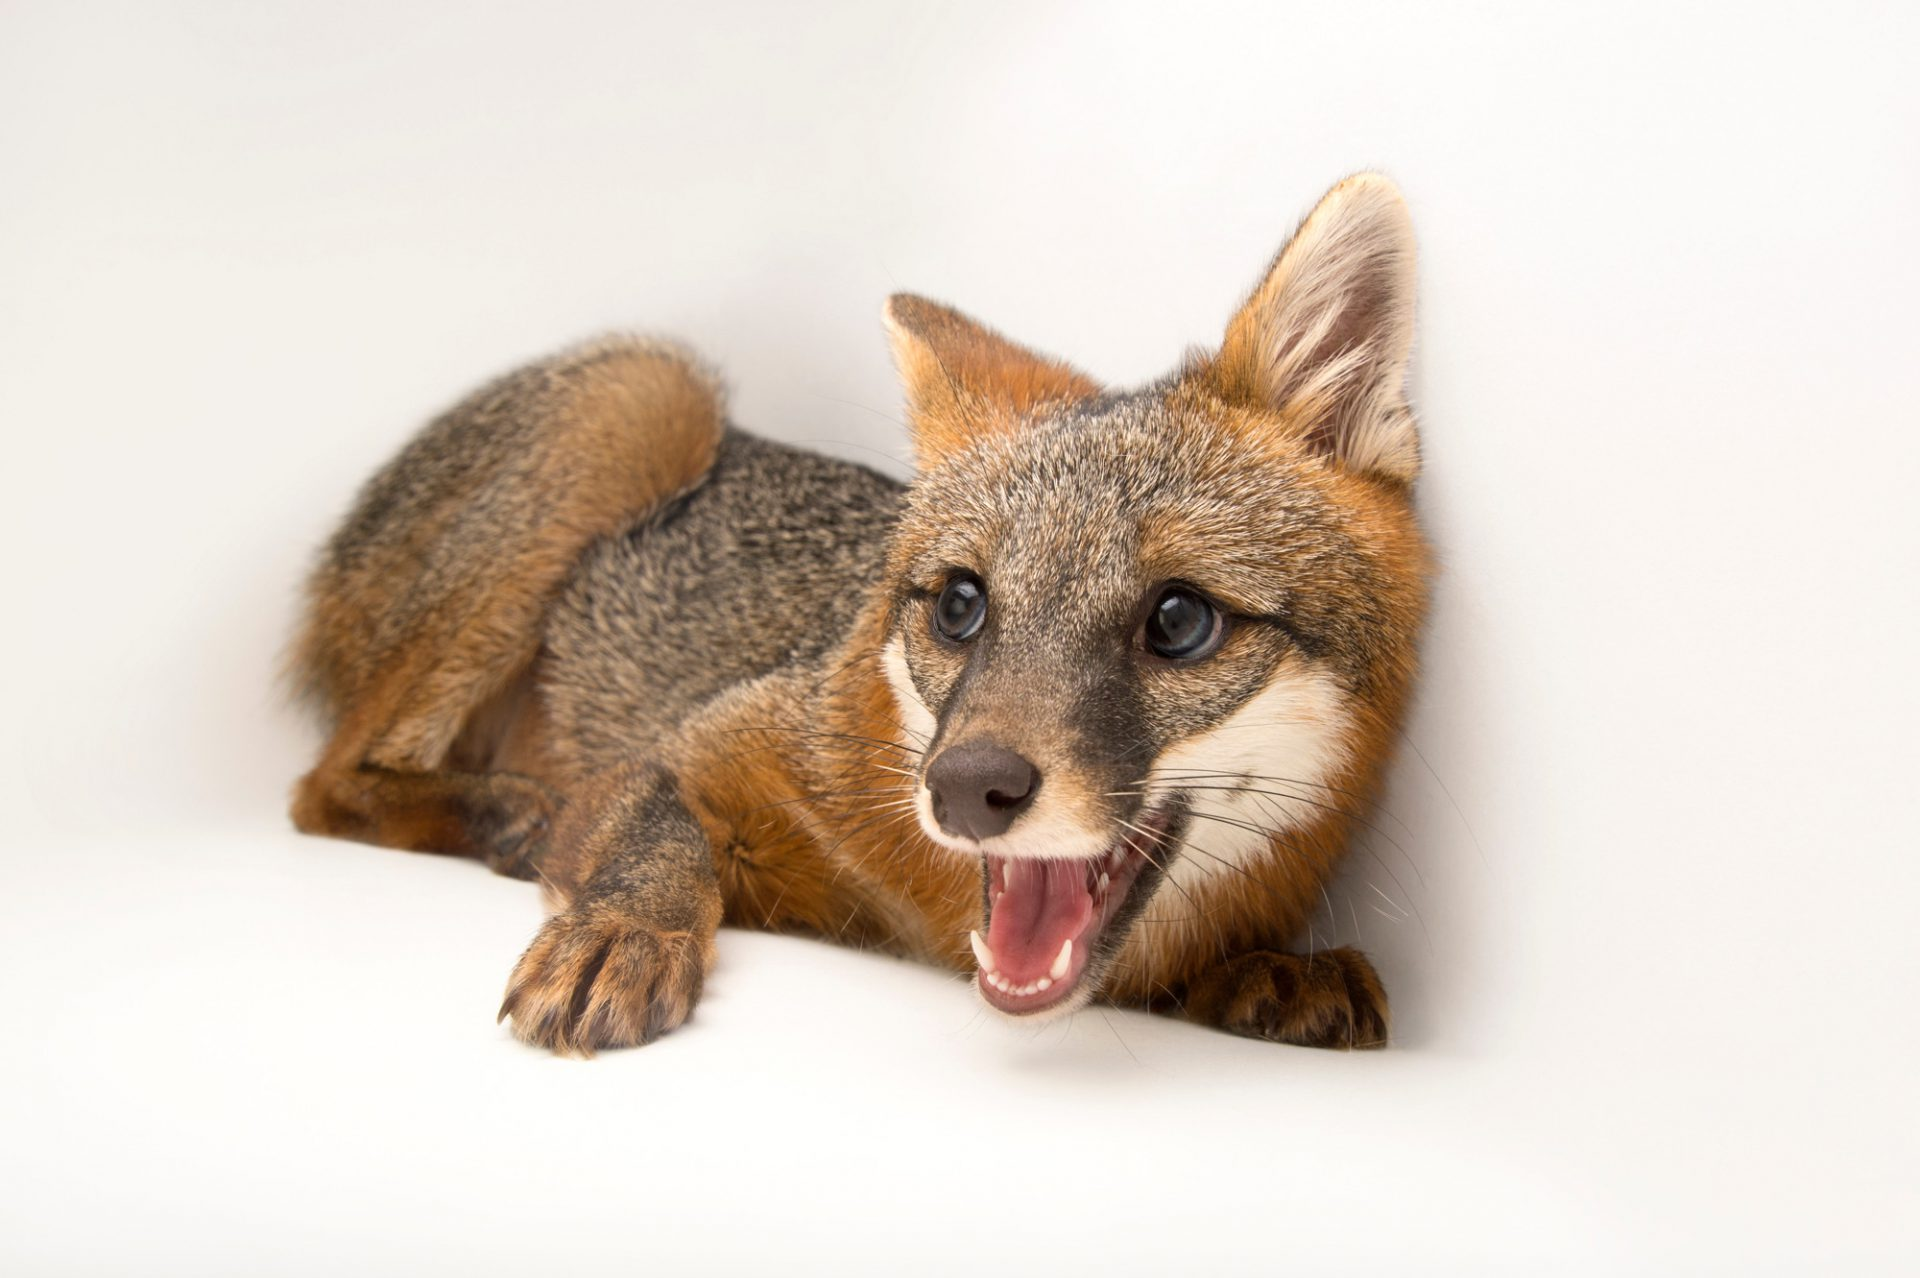 A female gray fox (Urocyon cinereoargenteus floridanus), This fox was taken to St. Francis Wildlife Association, a wildlife rescue center near Quincy, Florida, after it had been hit by a car.